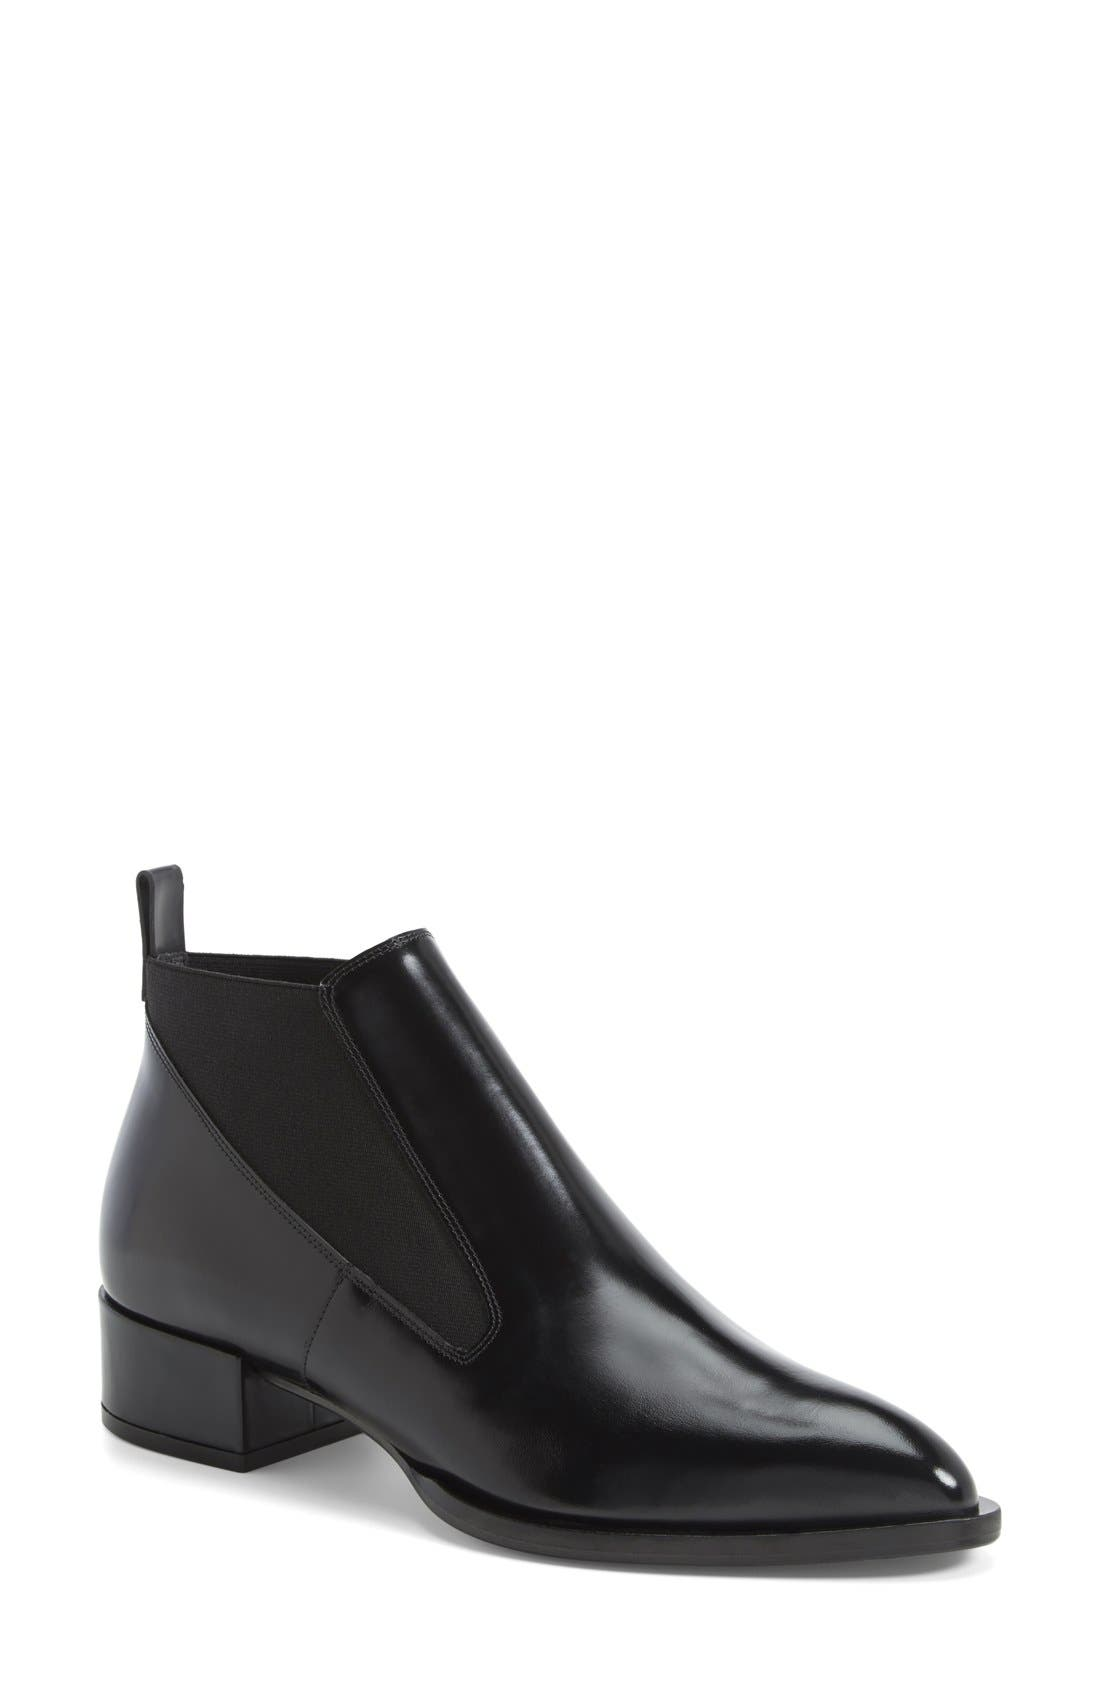 Main Image - Vince 'Yarrow' Leather Chelsea Ankle Boot (Women)